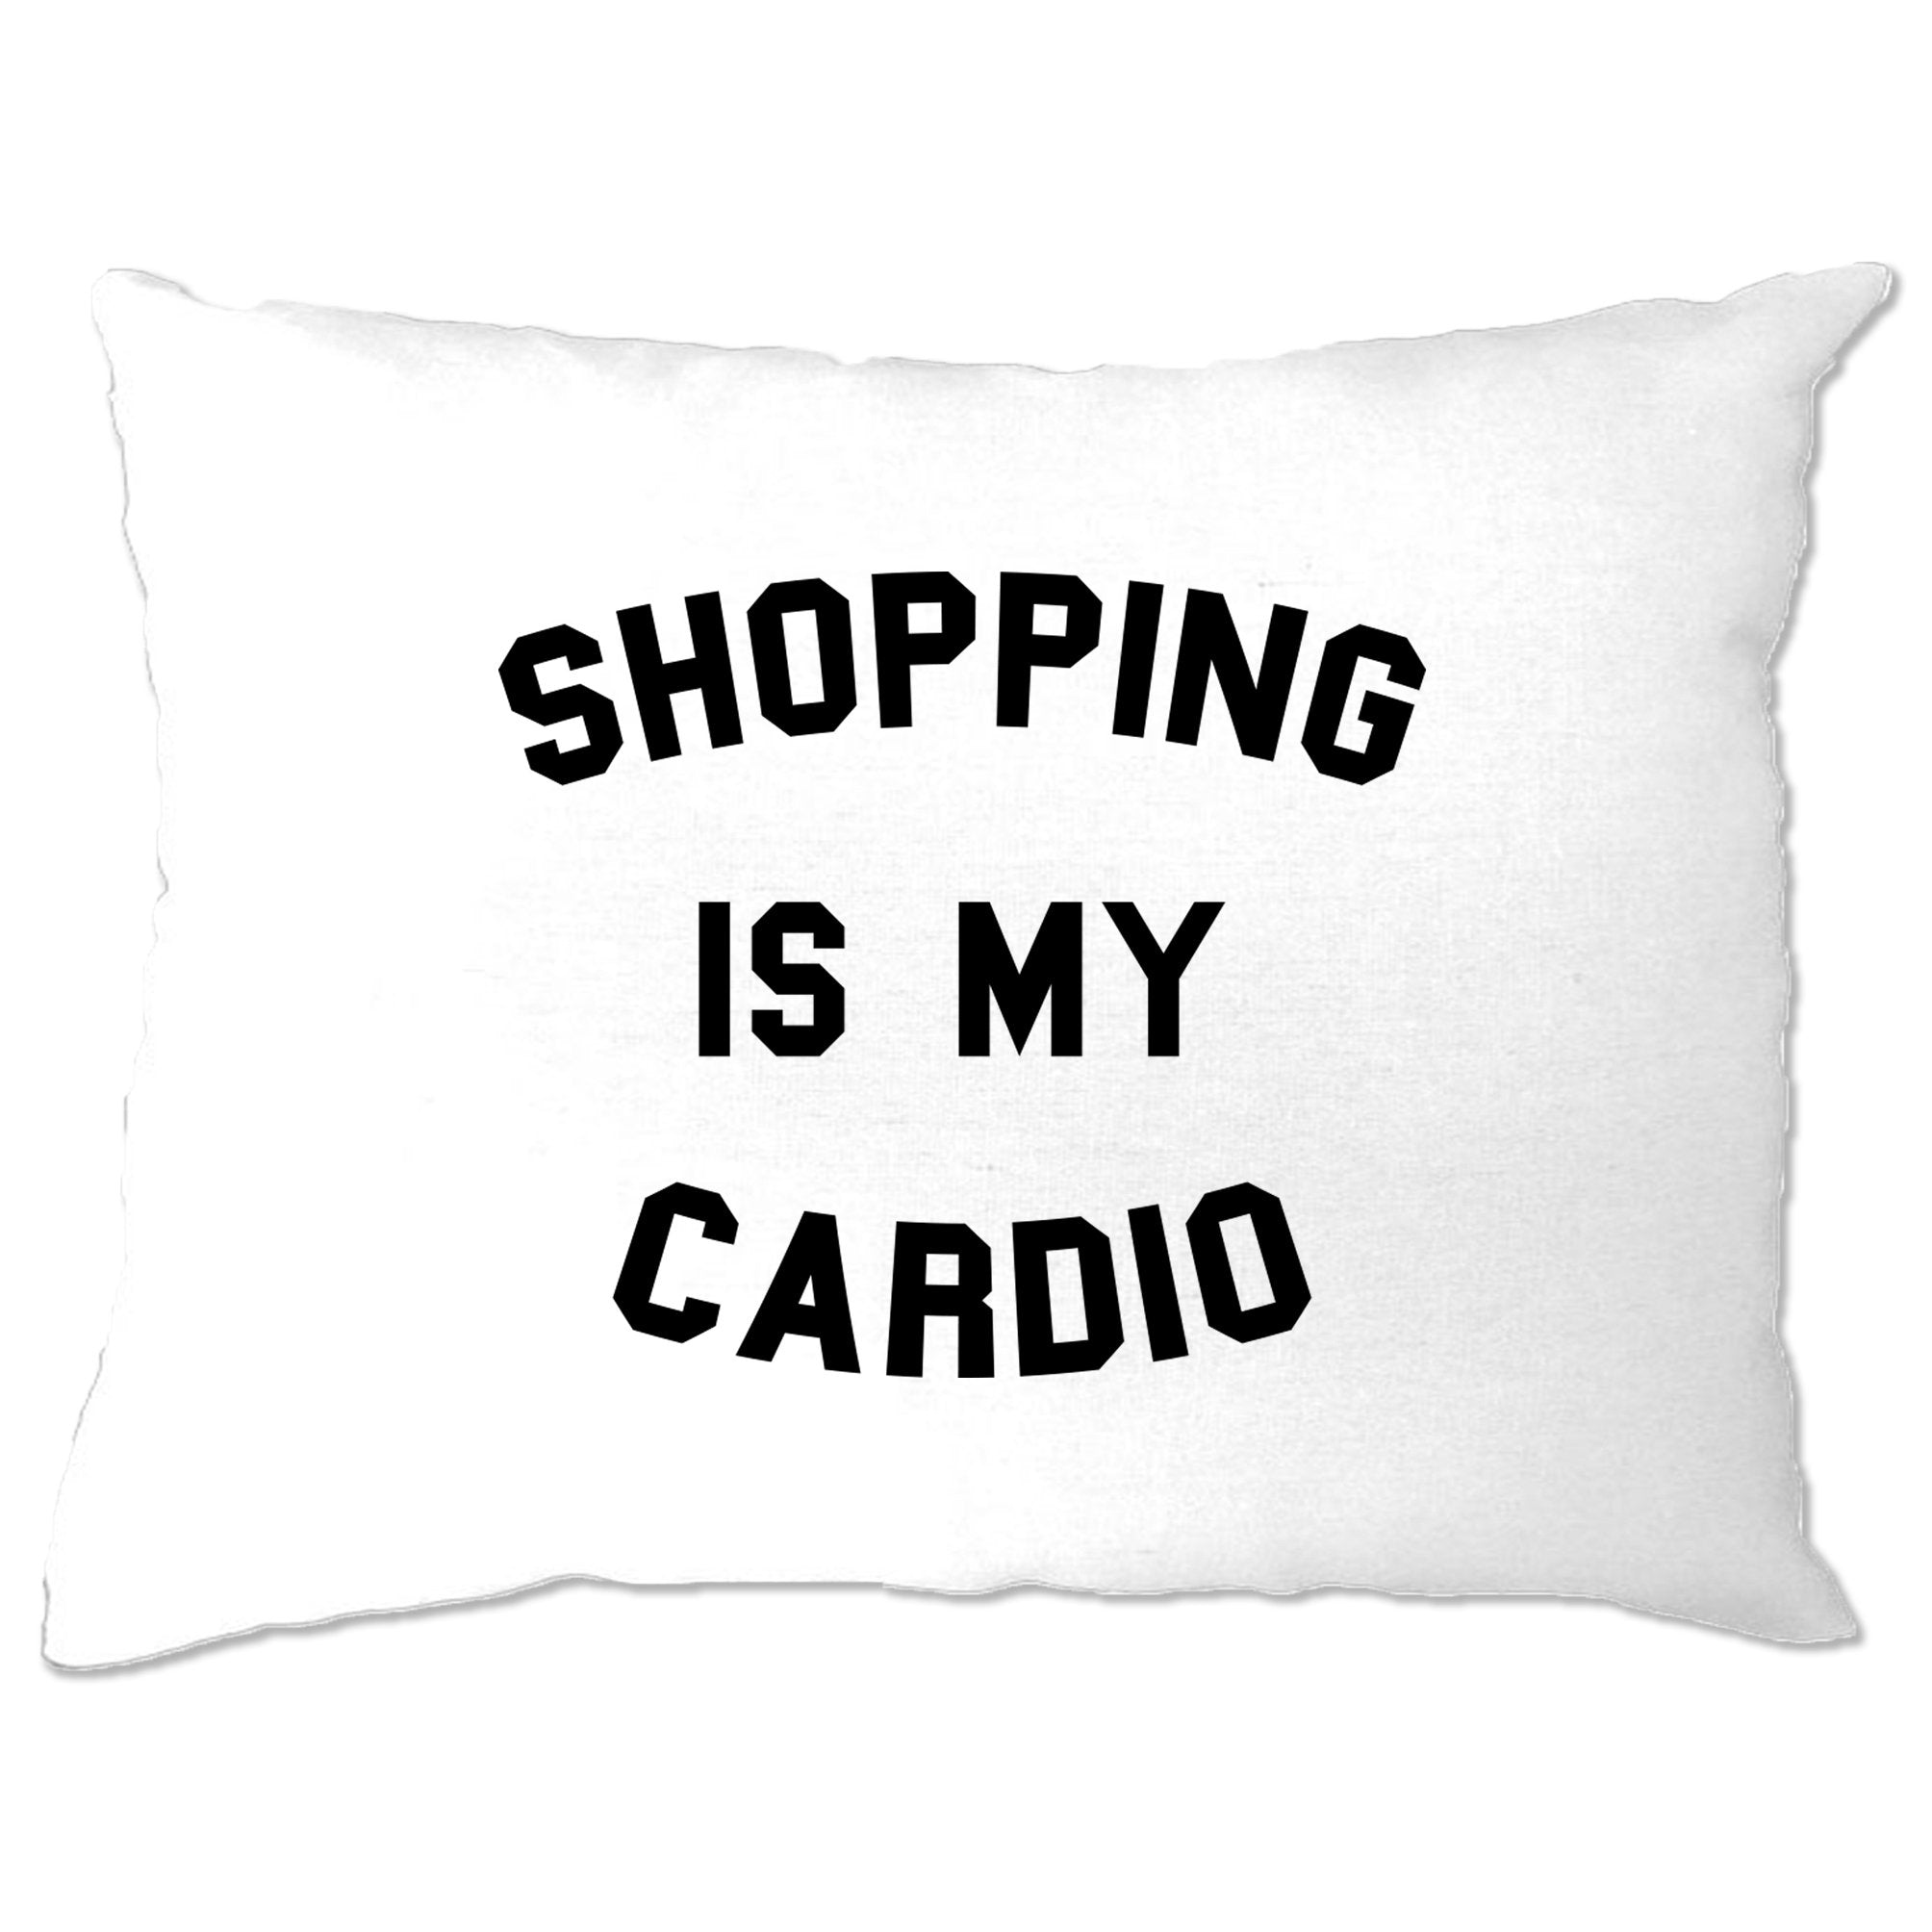 Novelty Pillow Case Shopping Is My Cardio Slogan